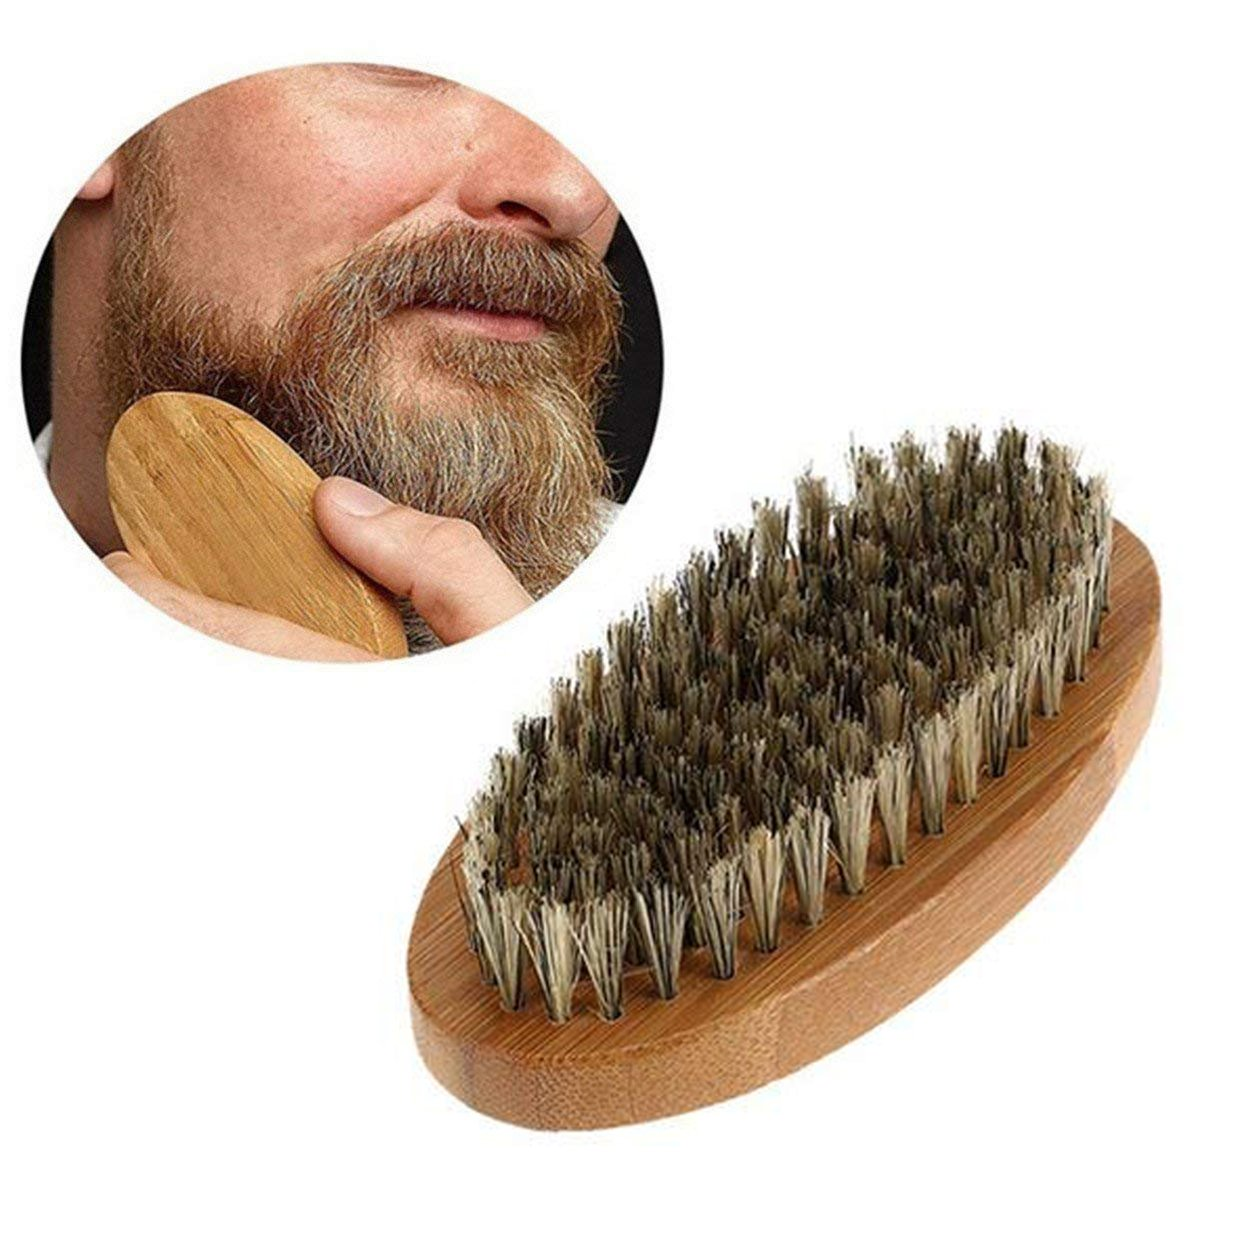 Beard Brush for Men, Beard Grooming Kit Eholder Mini Pocket Hand Wooden Brush for Shaving Moustache and Hair Styling Worked with Growth Balm Oil Wax, Boar Bristle Beard Brush Eholder Manufacturing Company